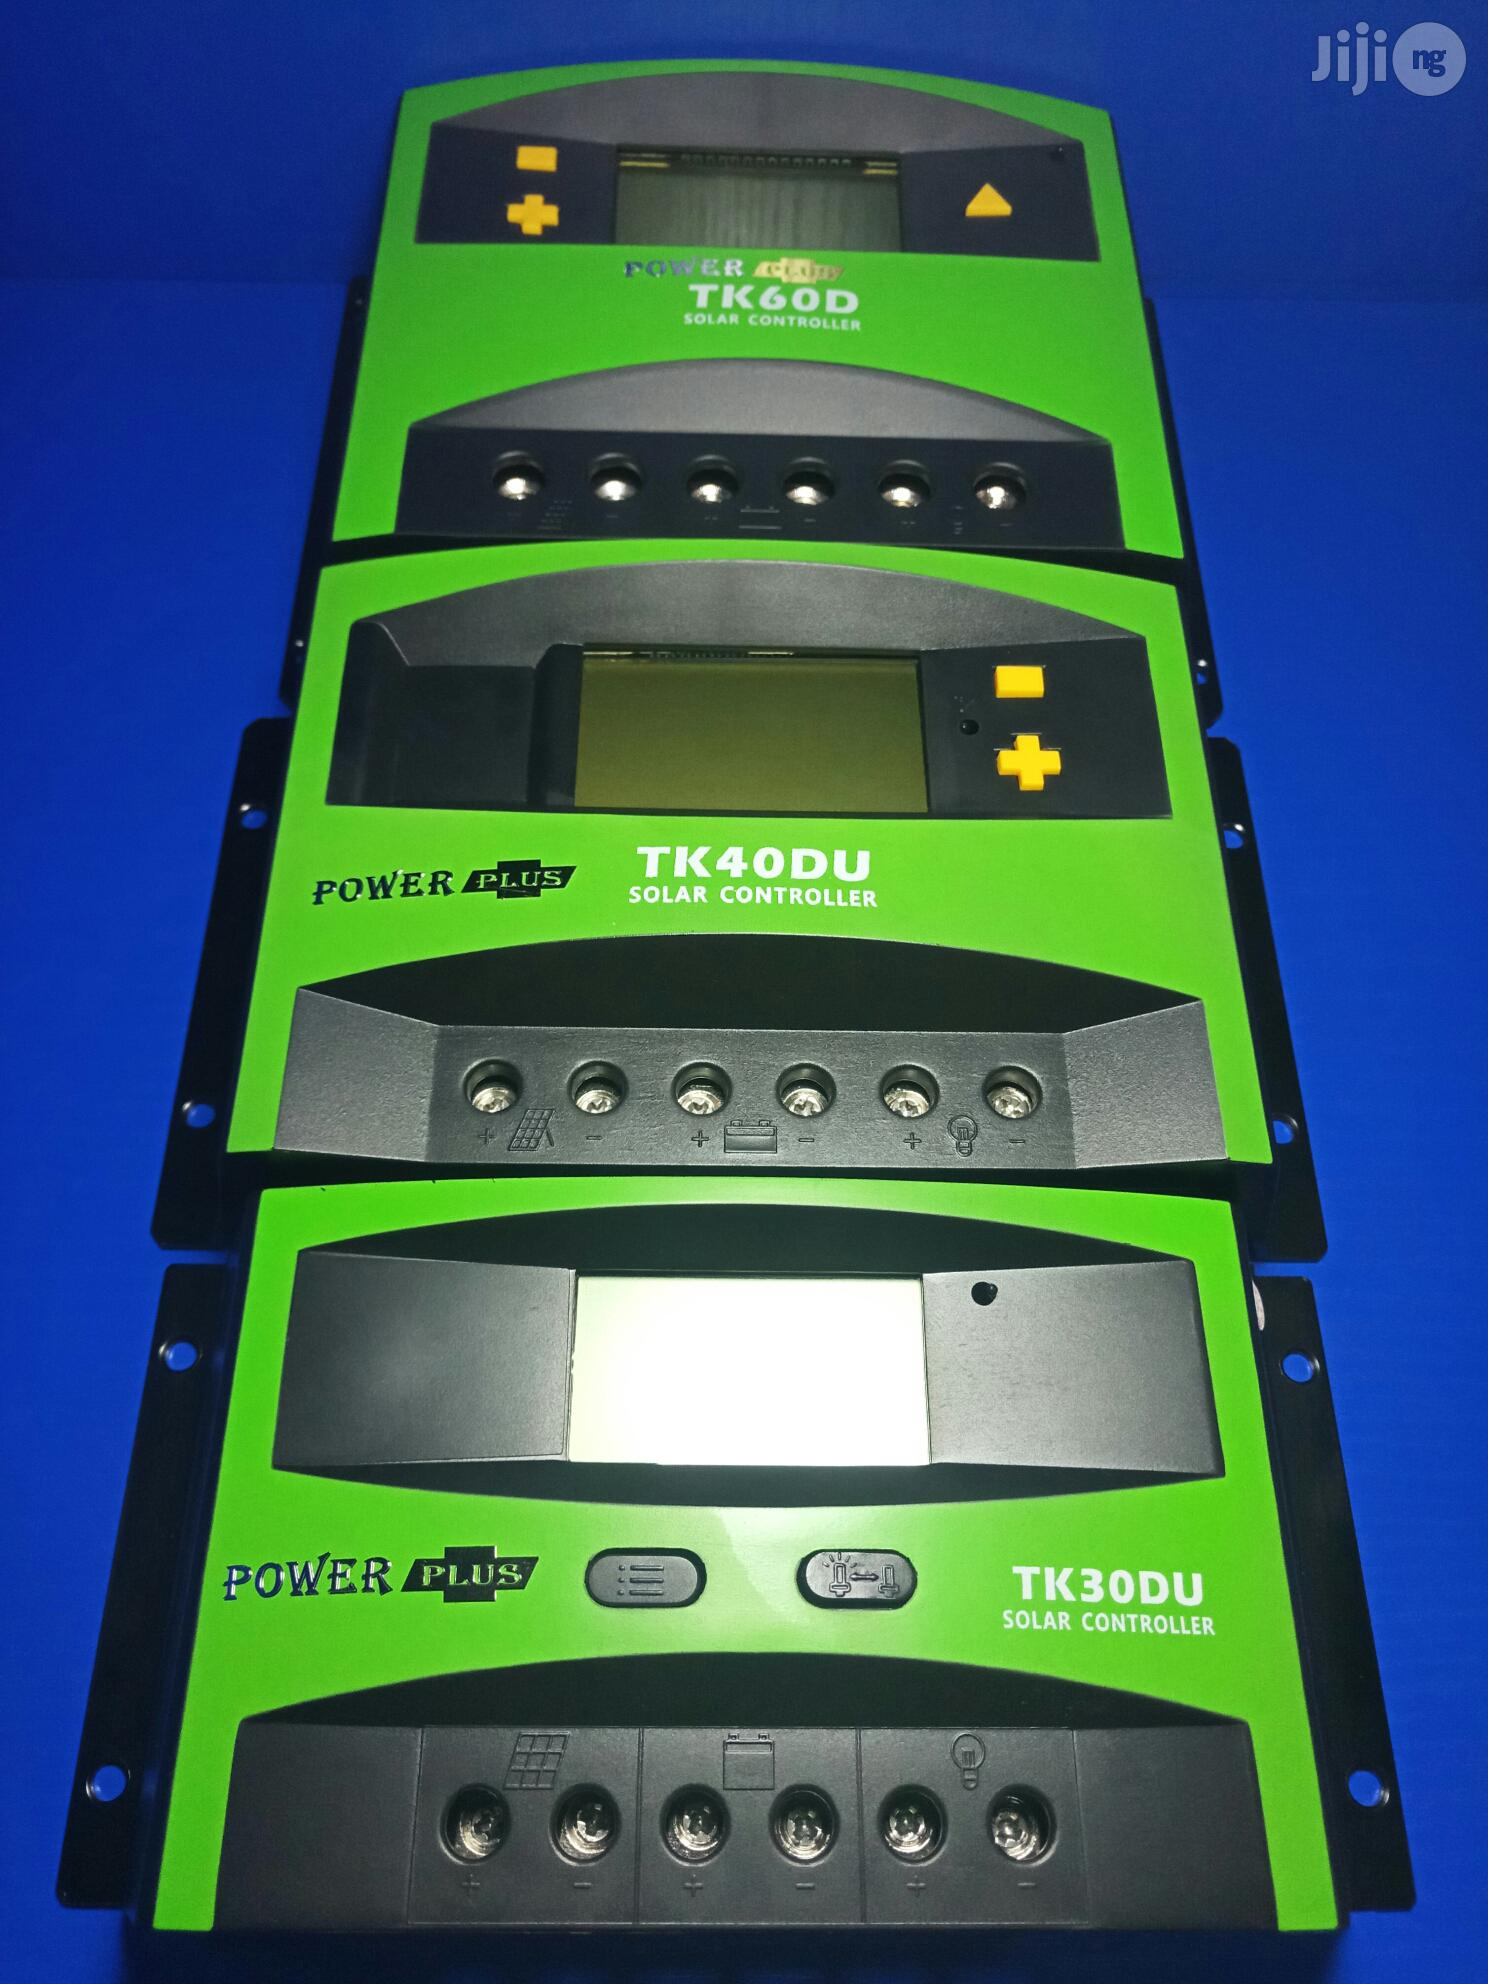 Powerplus 48v TK Charger Controller